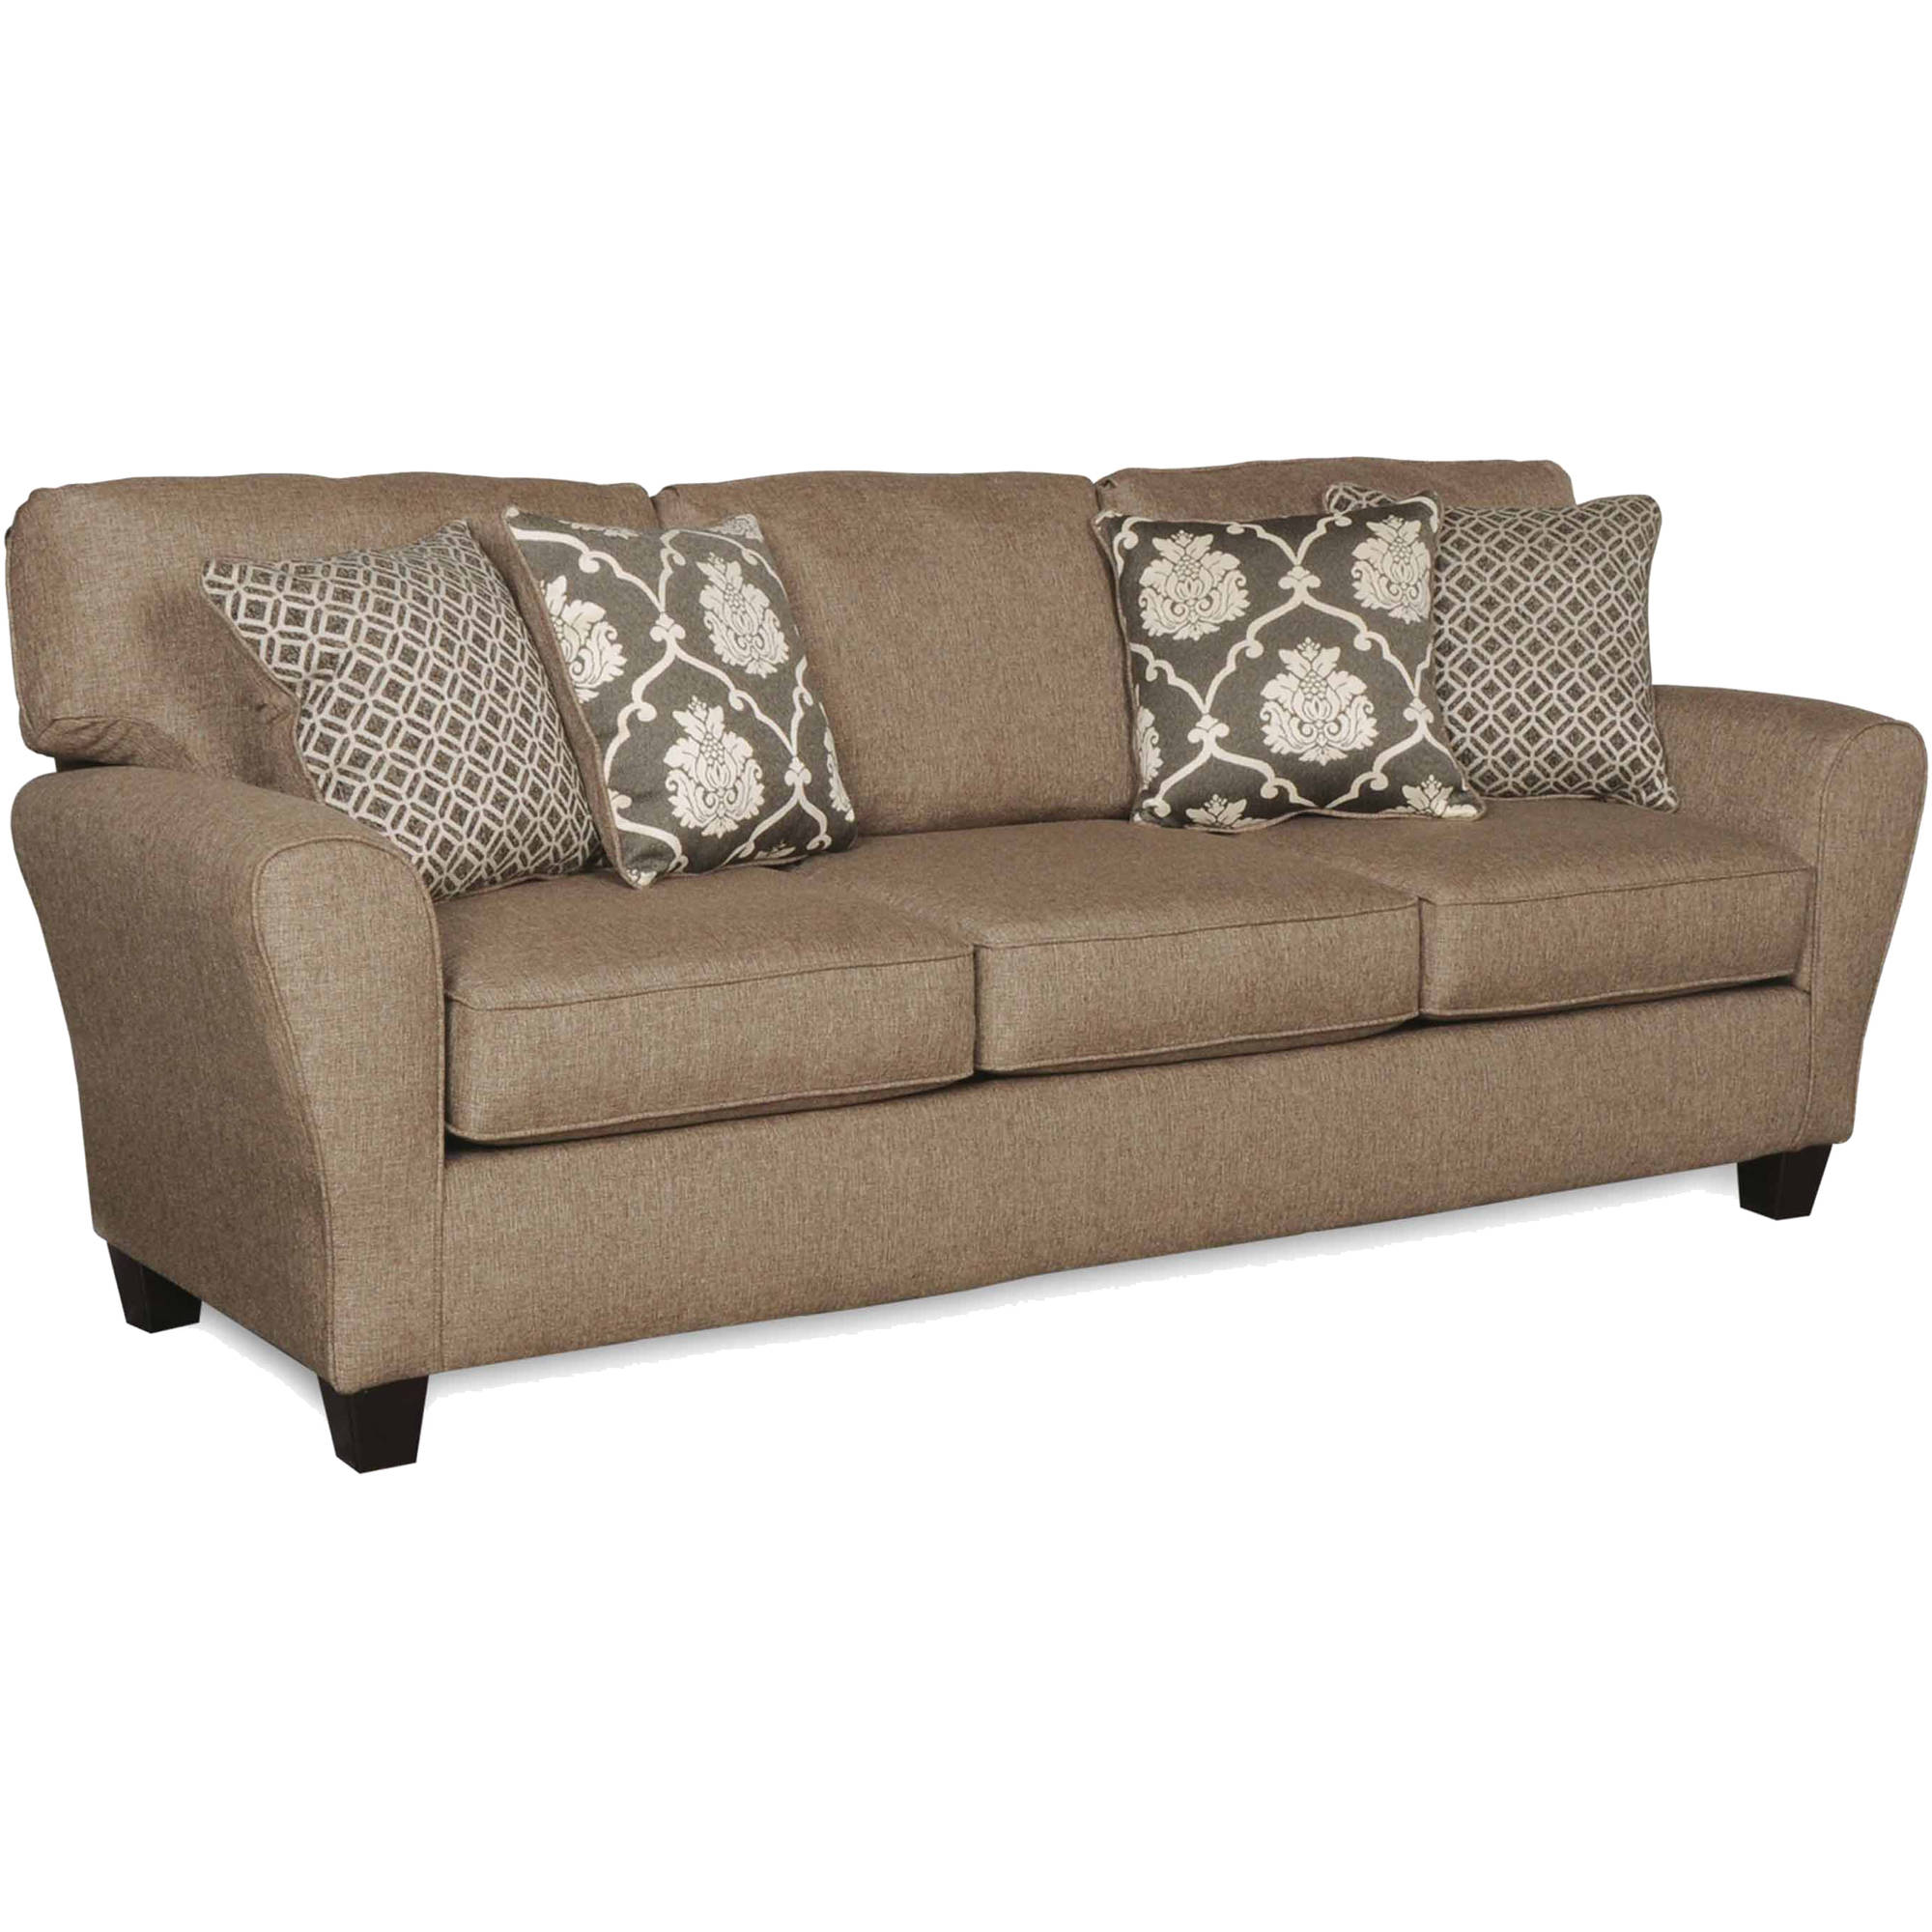 SoFab Aubrey Grande Brown with Light Grey 3-Seat Sofa with 4 Reversible Accent Pillows